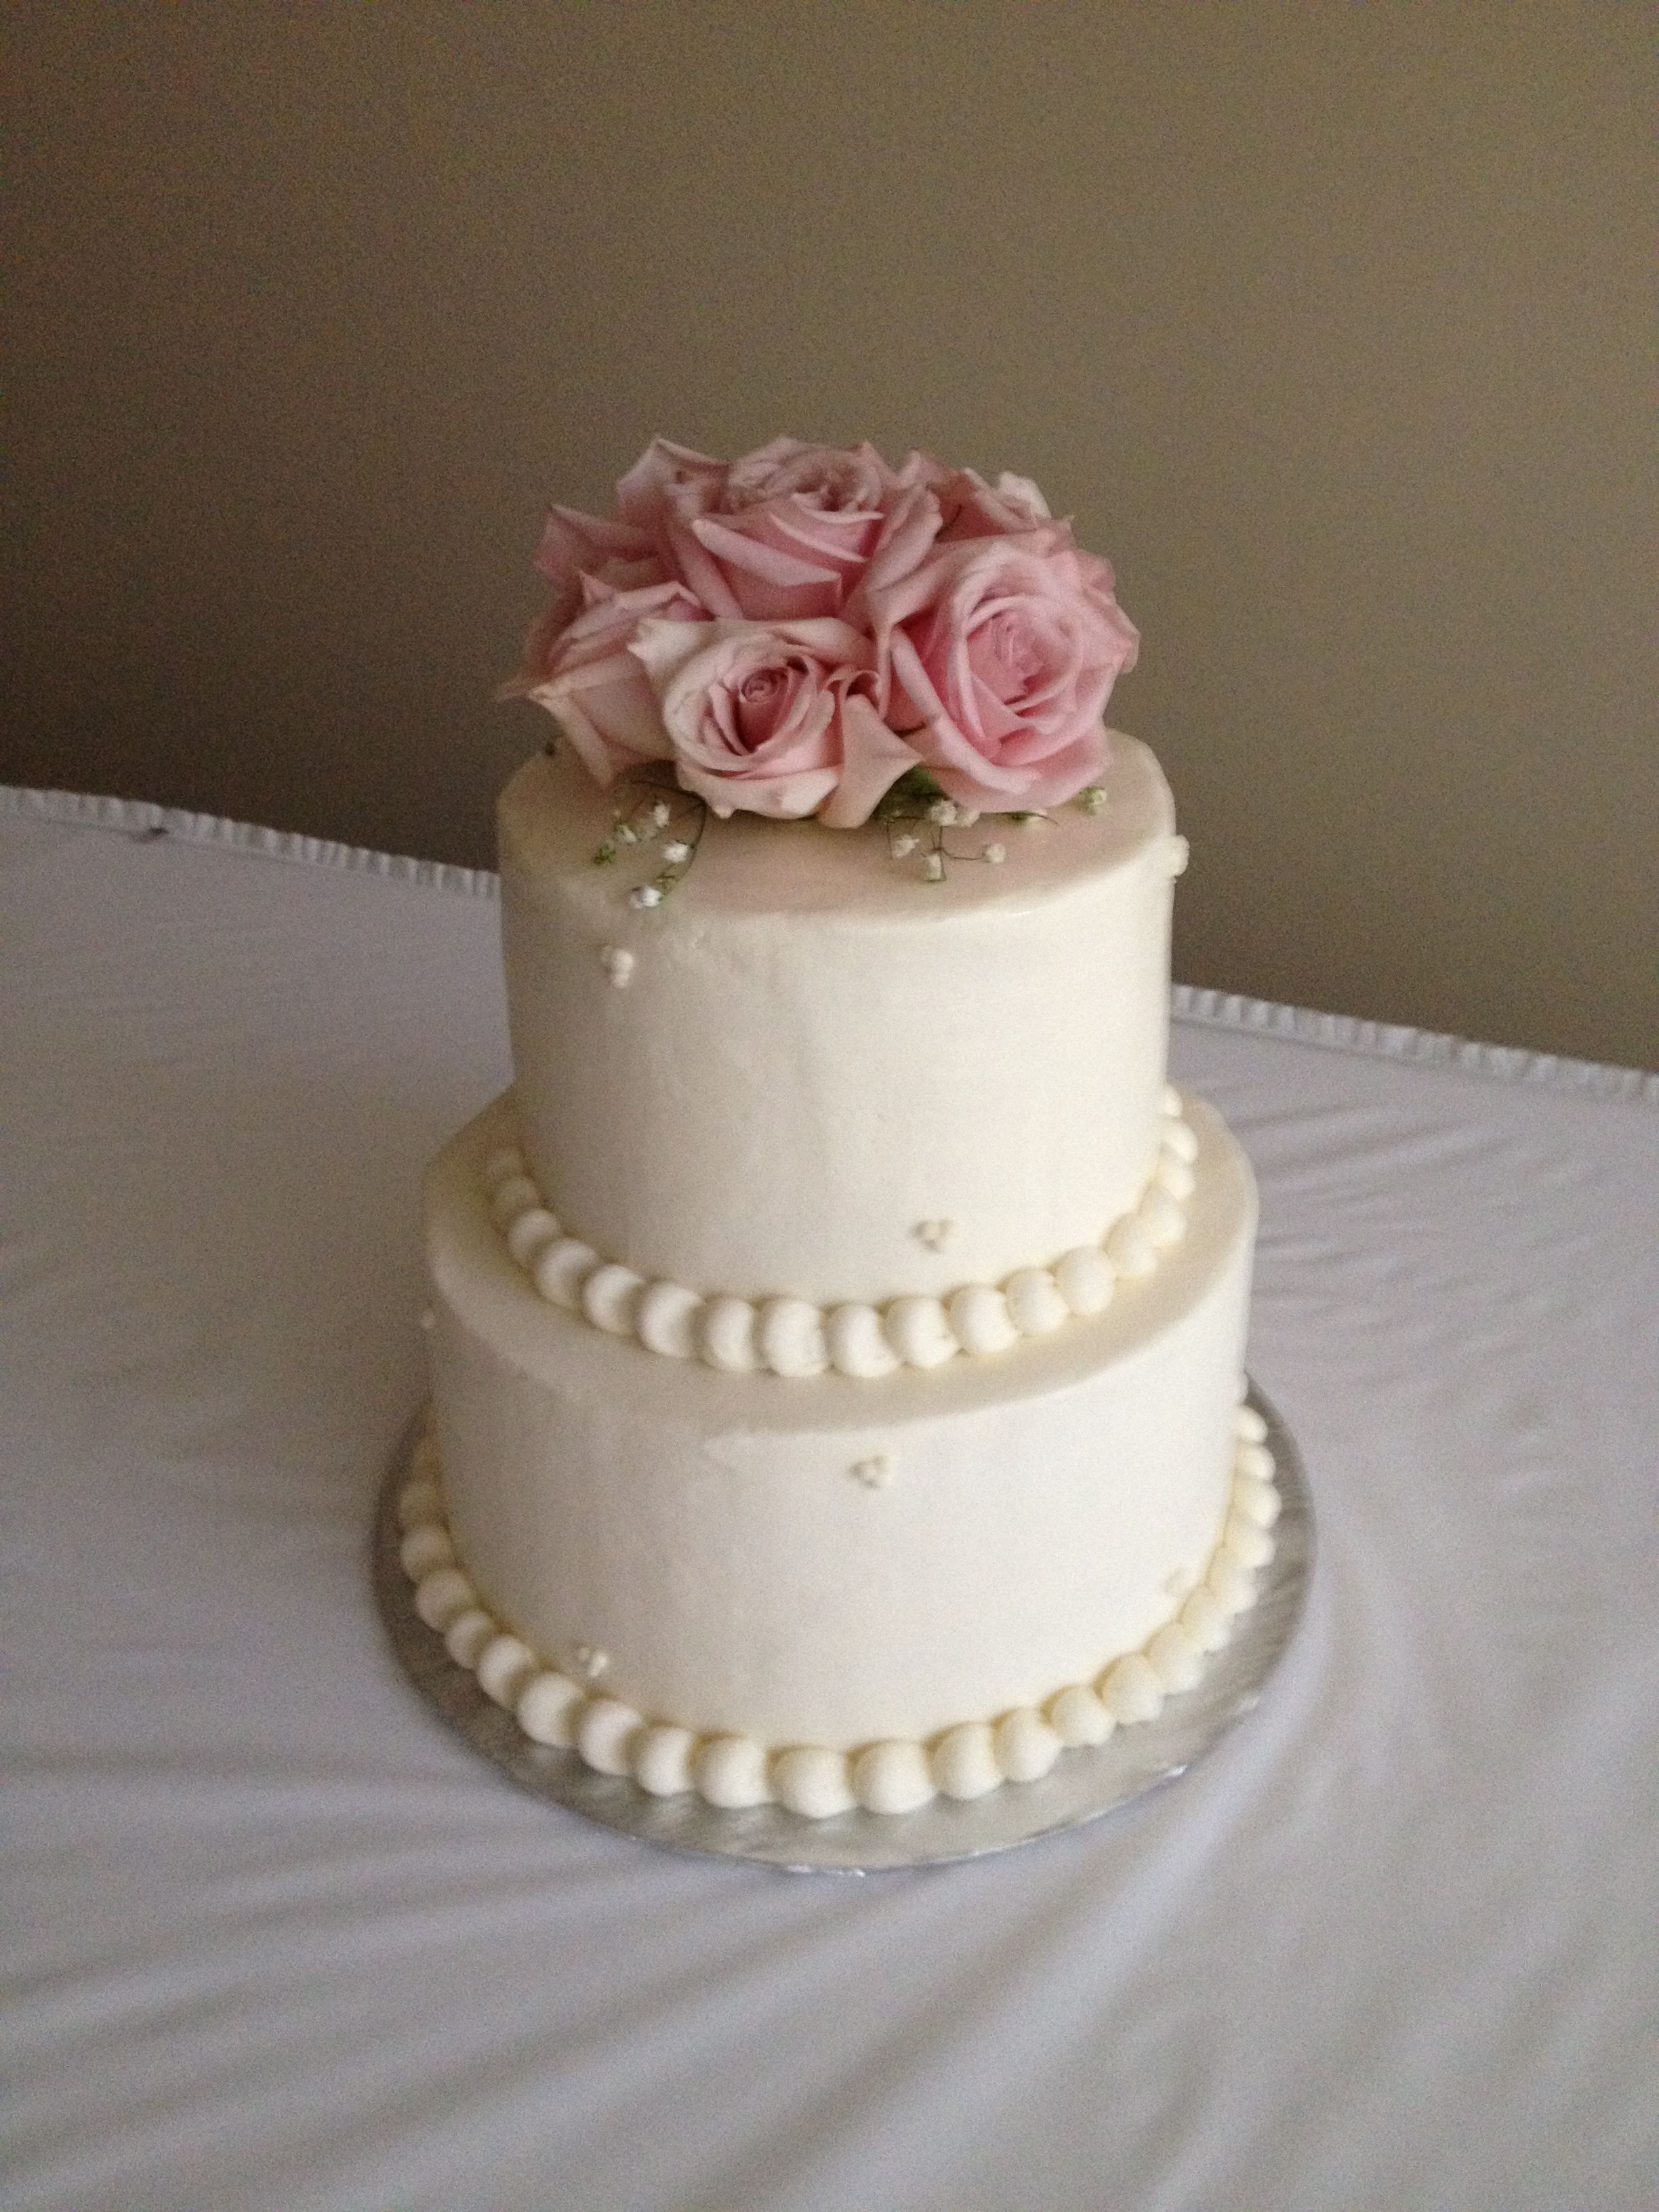 Gluten Free Wedding Cakes Jodycakes Com In Houston Tx